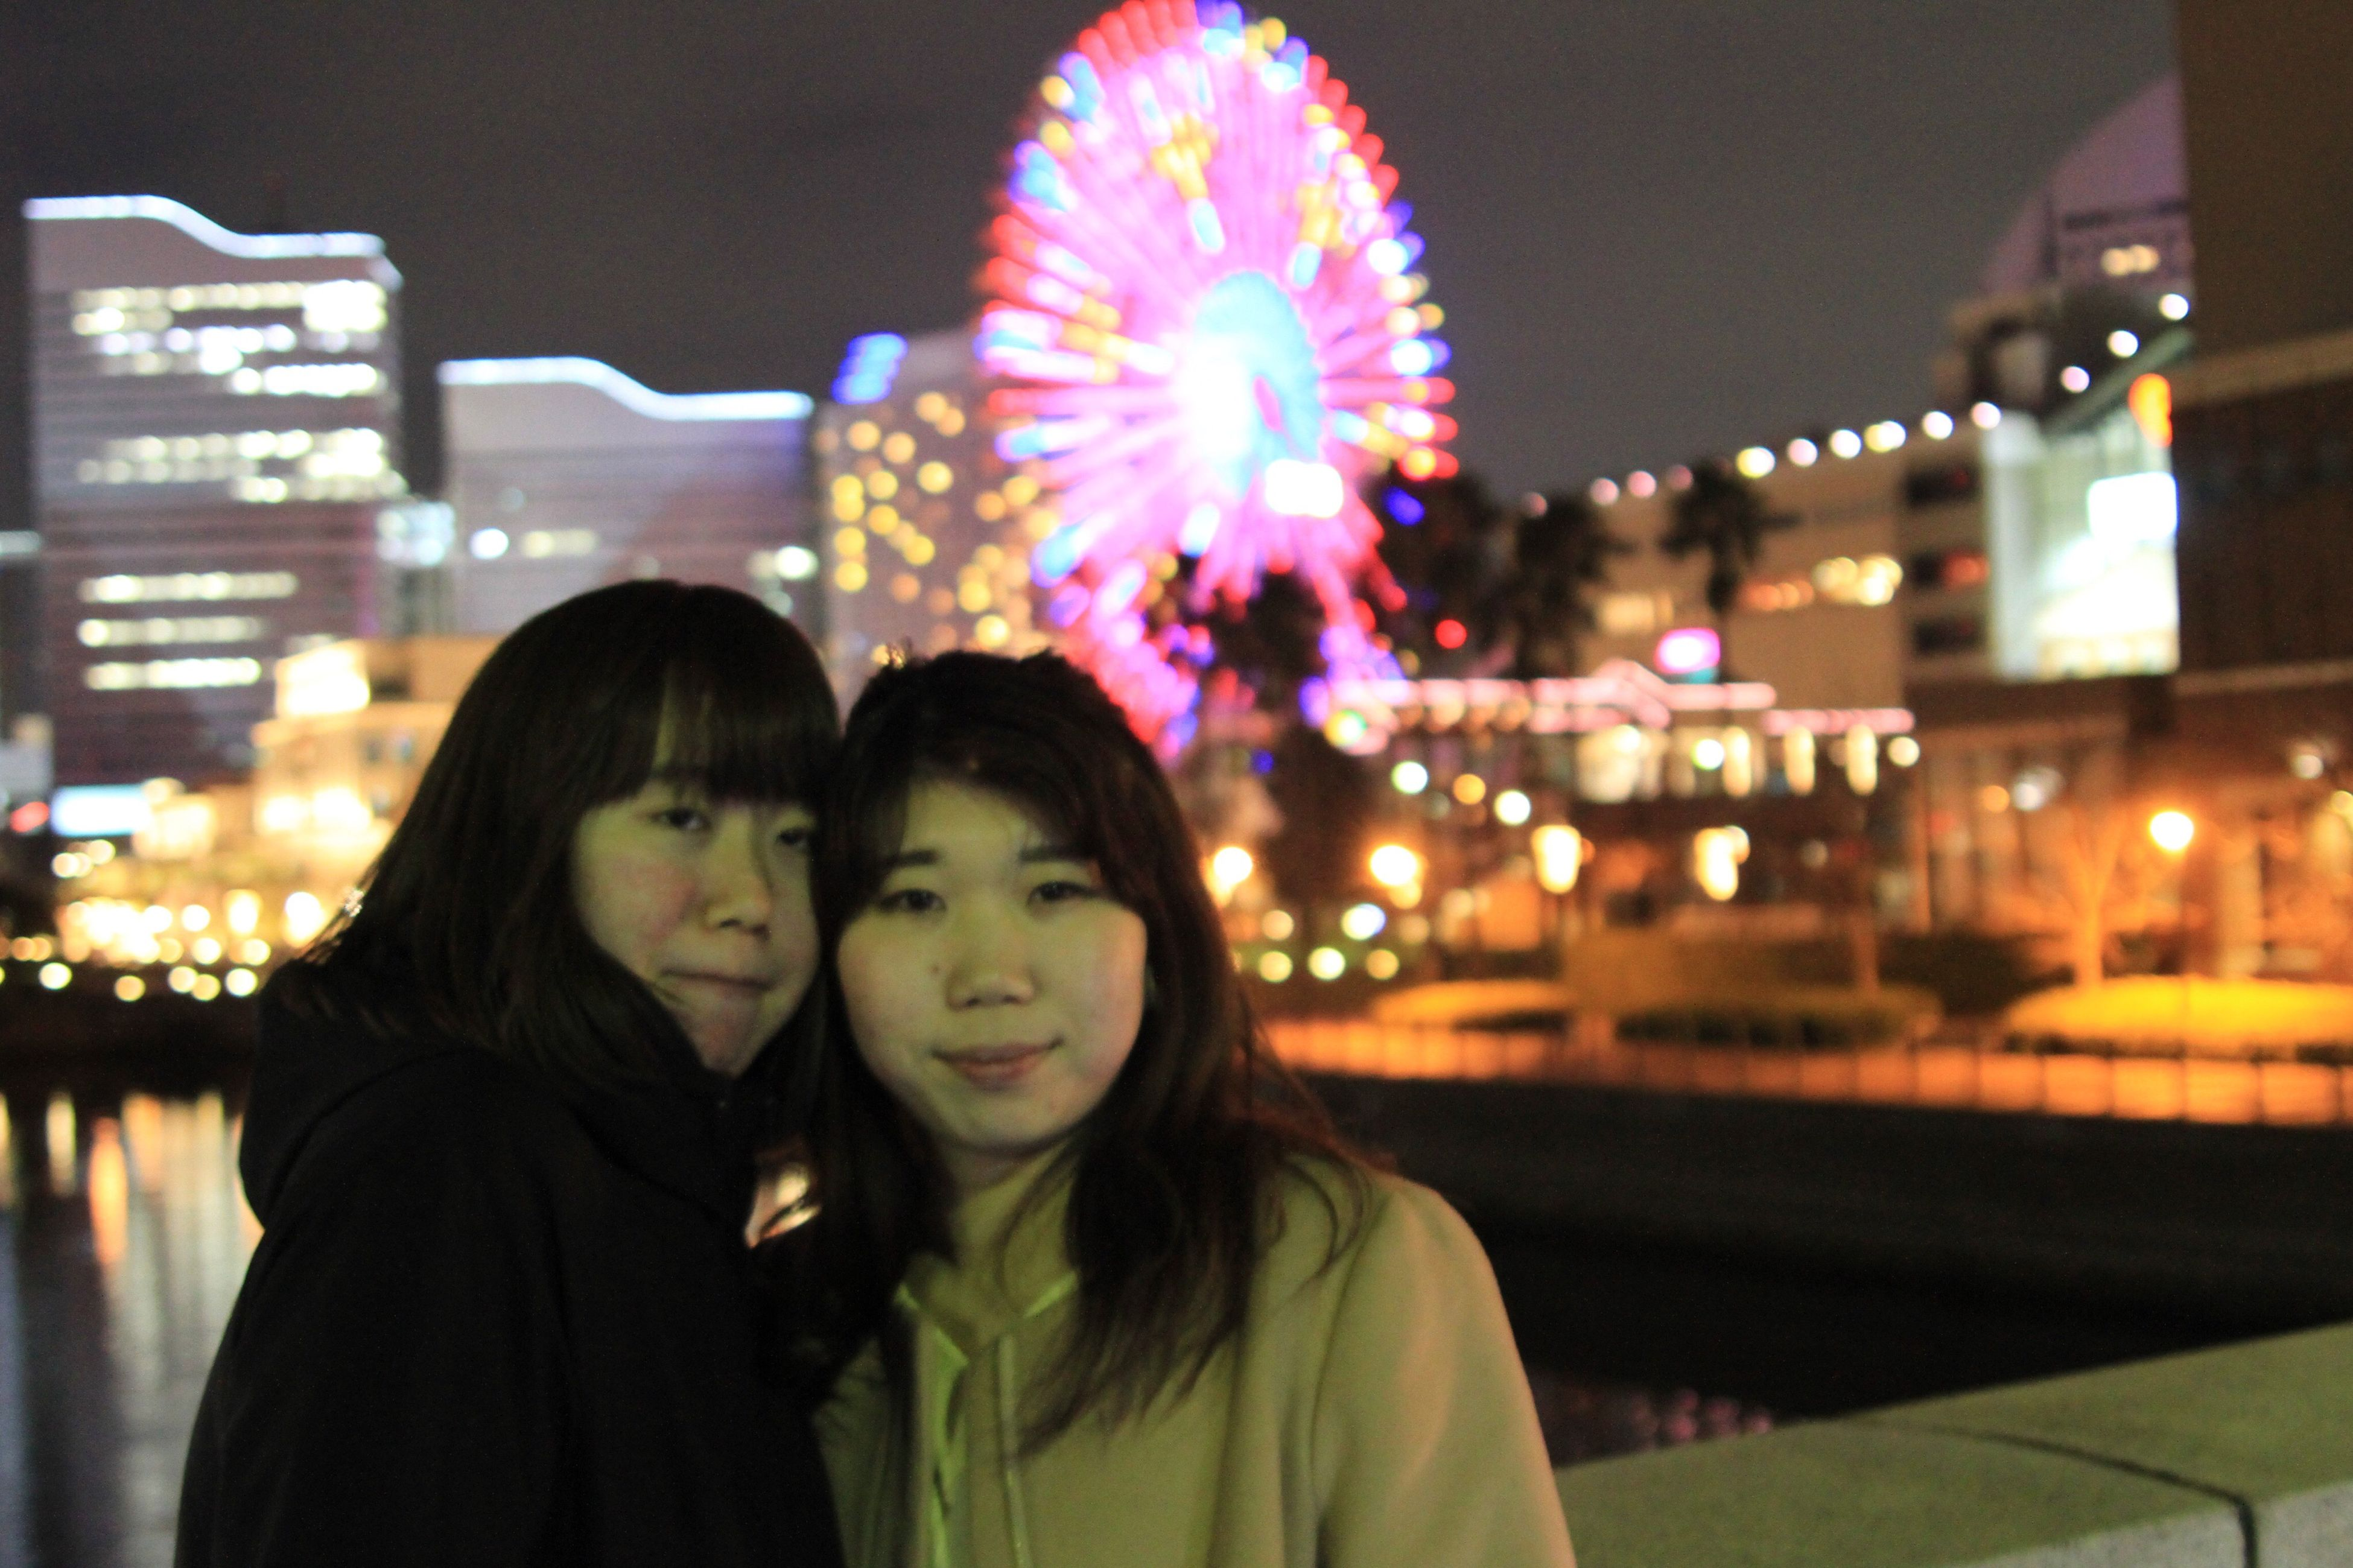 two people, night, illuminated, togetherness, real people, lifestyles, women, bonding, leisure activity, happiness, city, nightlife, smiling, people, neon, outdoors, adult